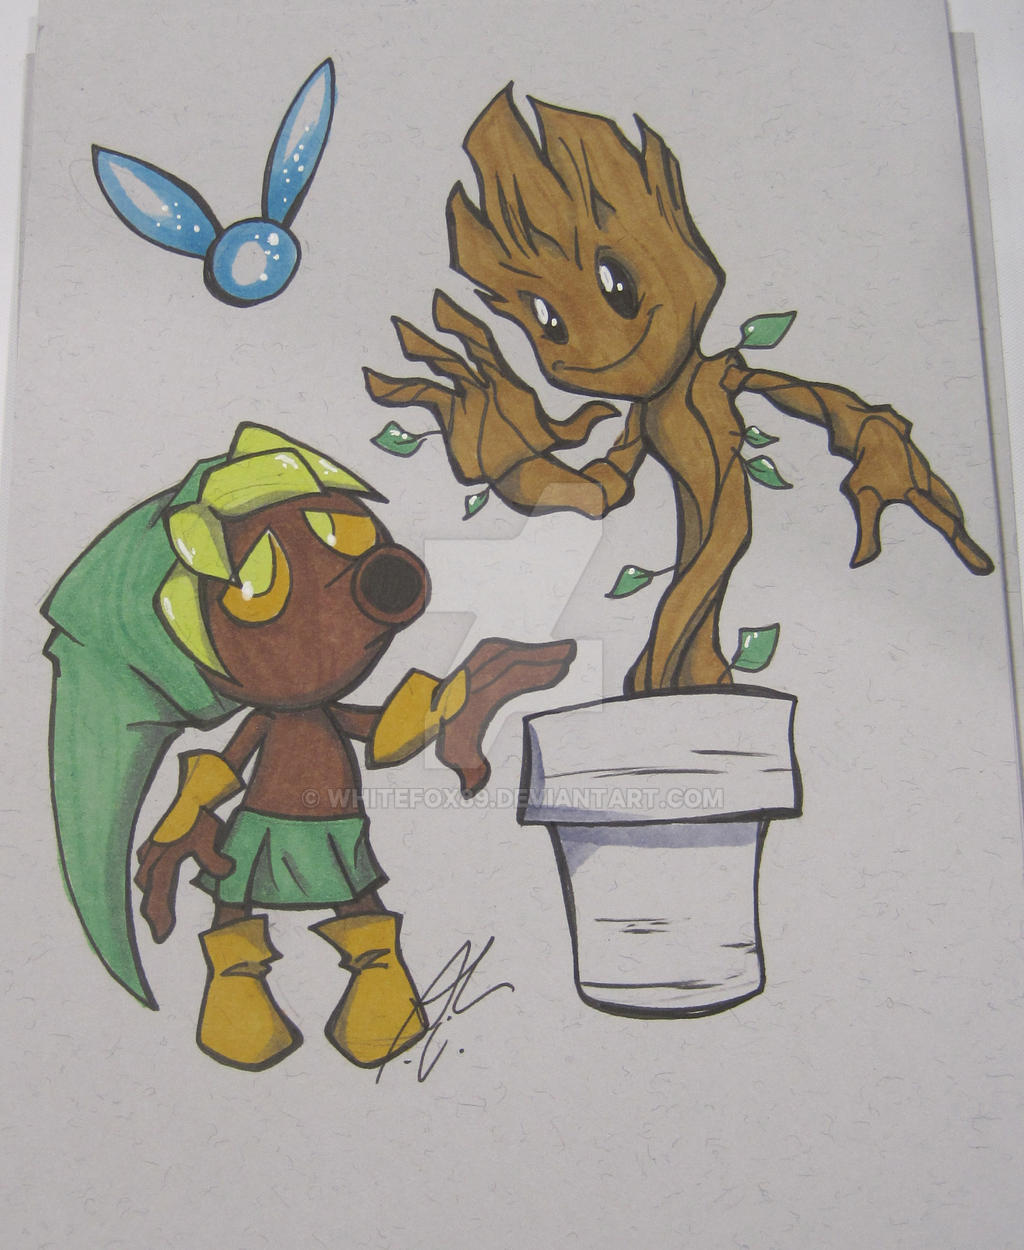 deku_nut_link_and_little_groot_by_whitef